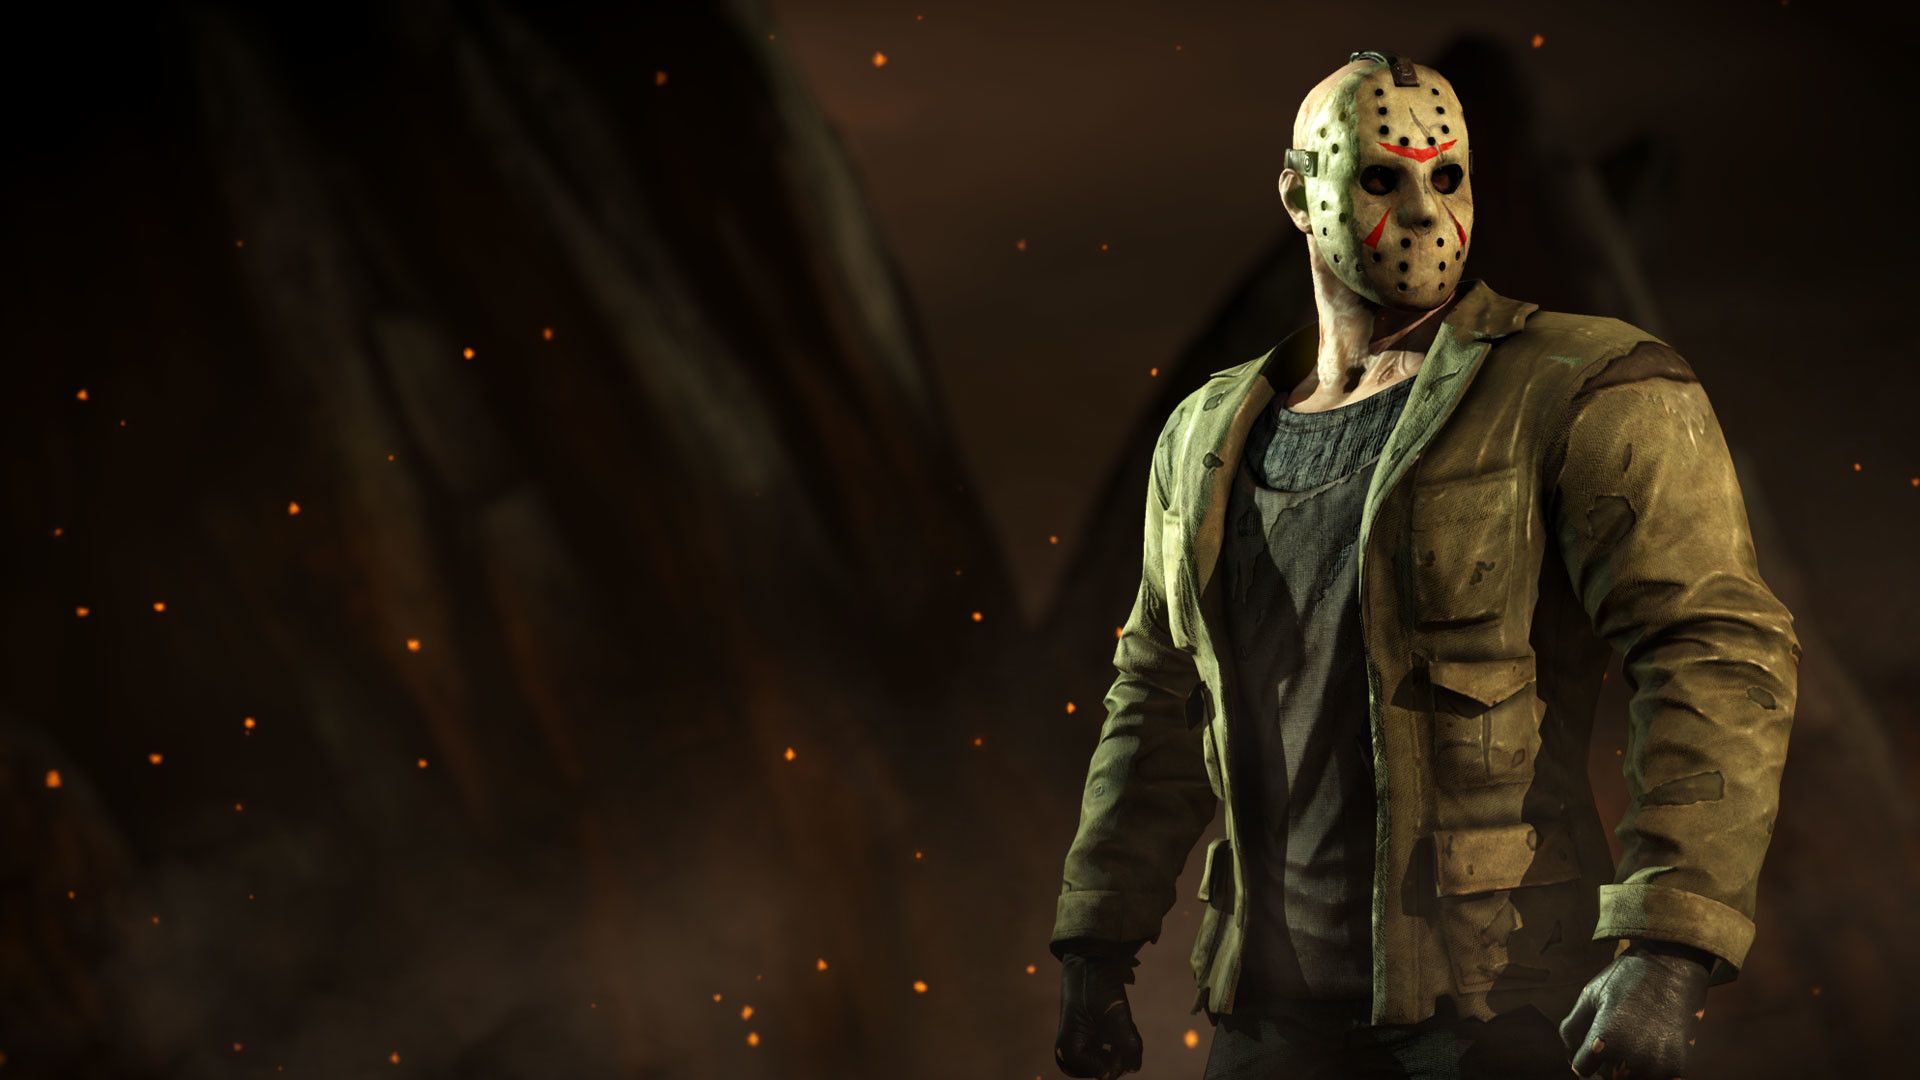 1920x1080 Jason Voorhees Wallpapers High Quality